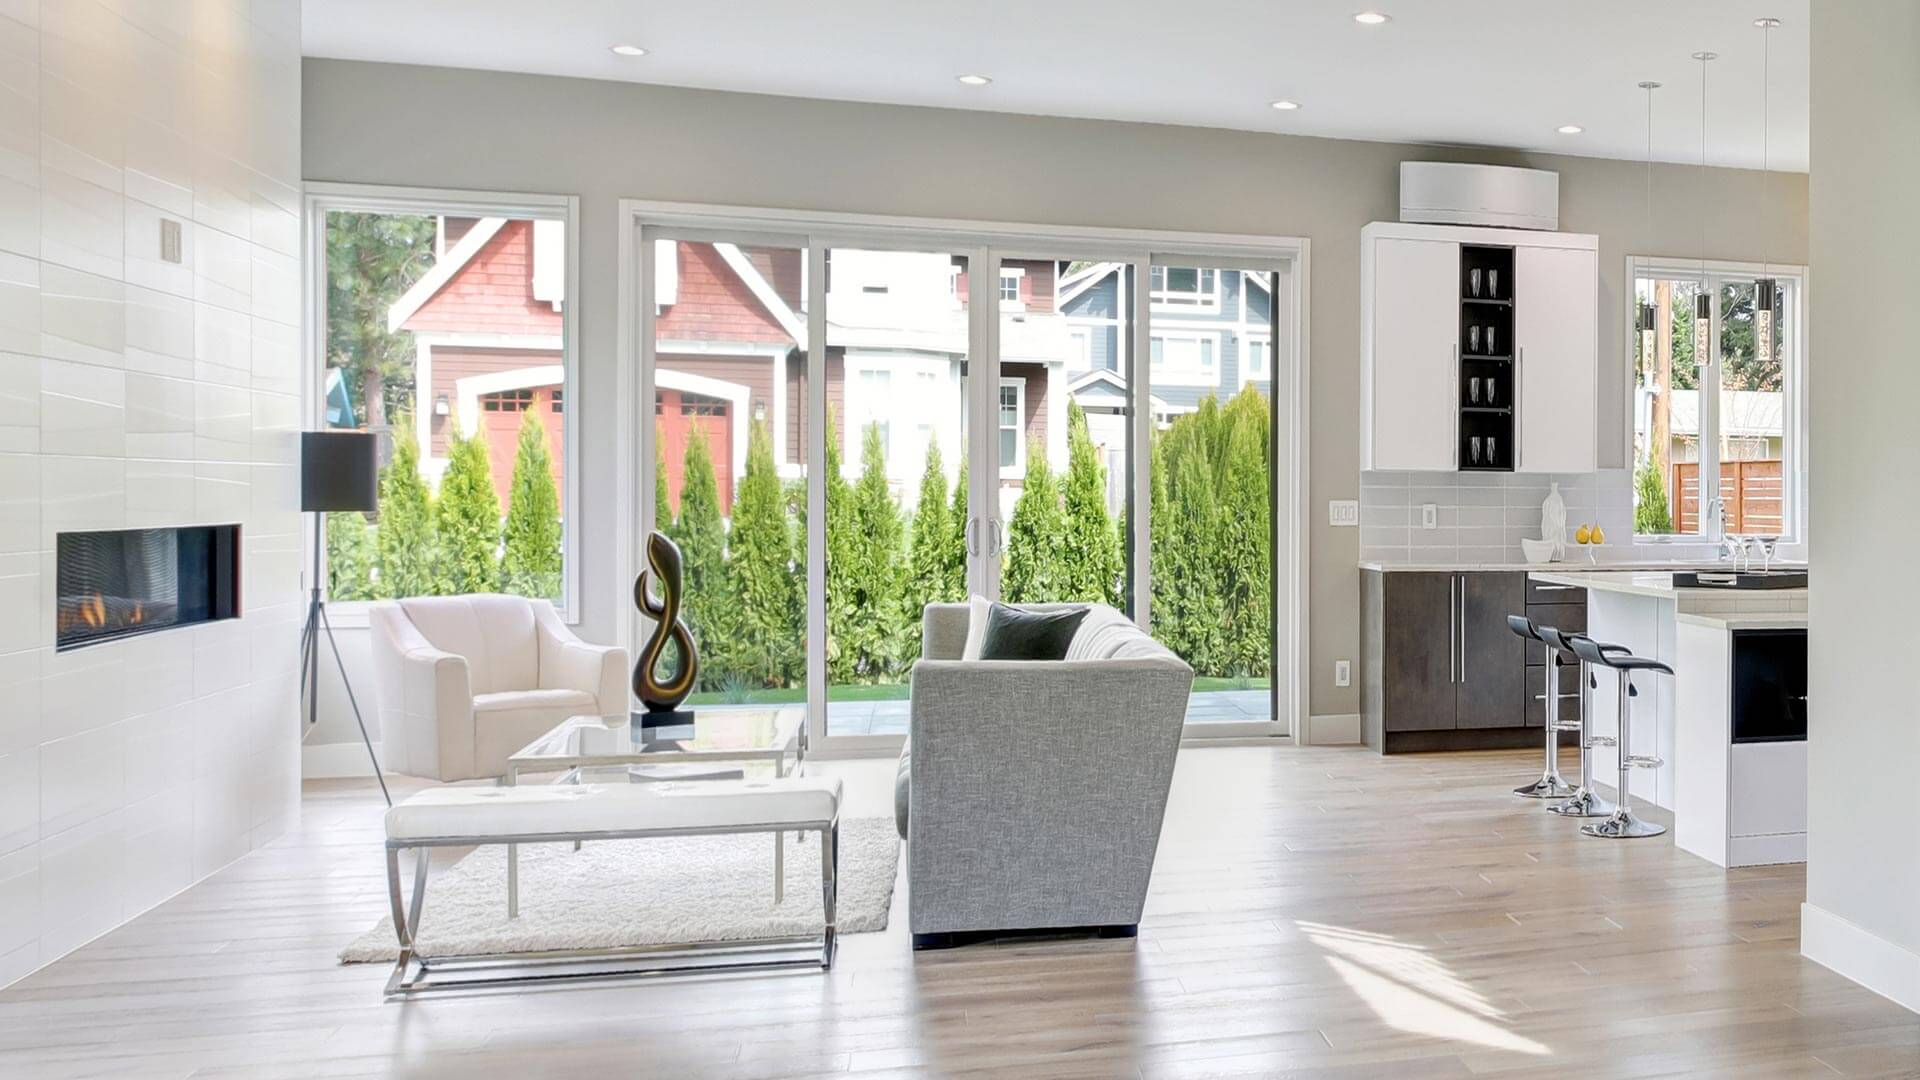 Sliding Patio Doors in a Modern Living room in the suburbs.